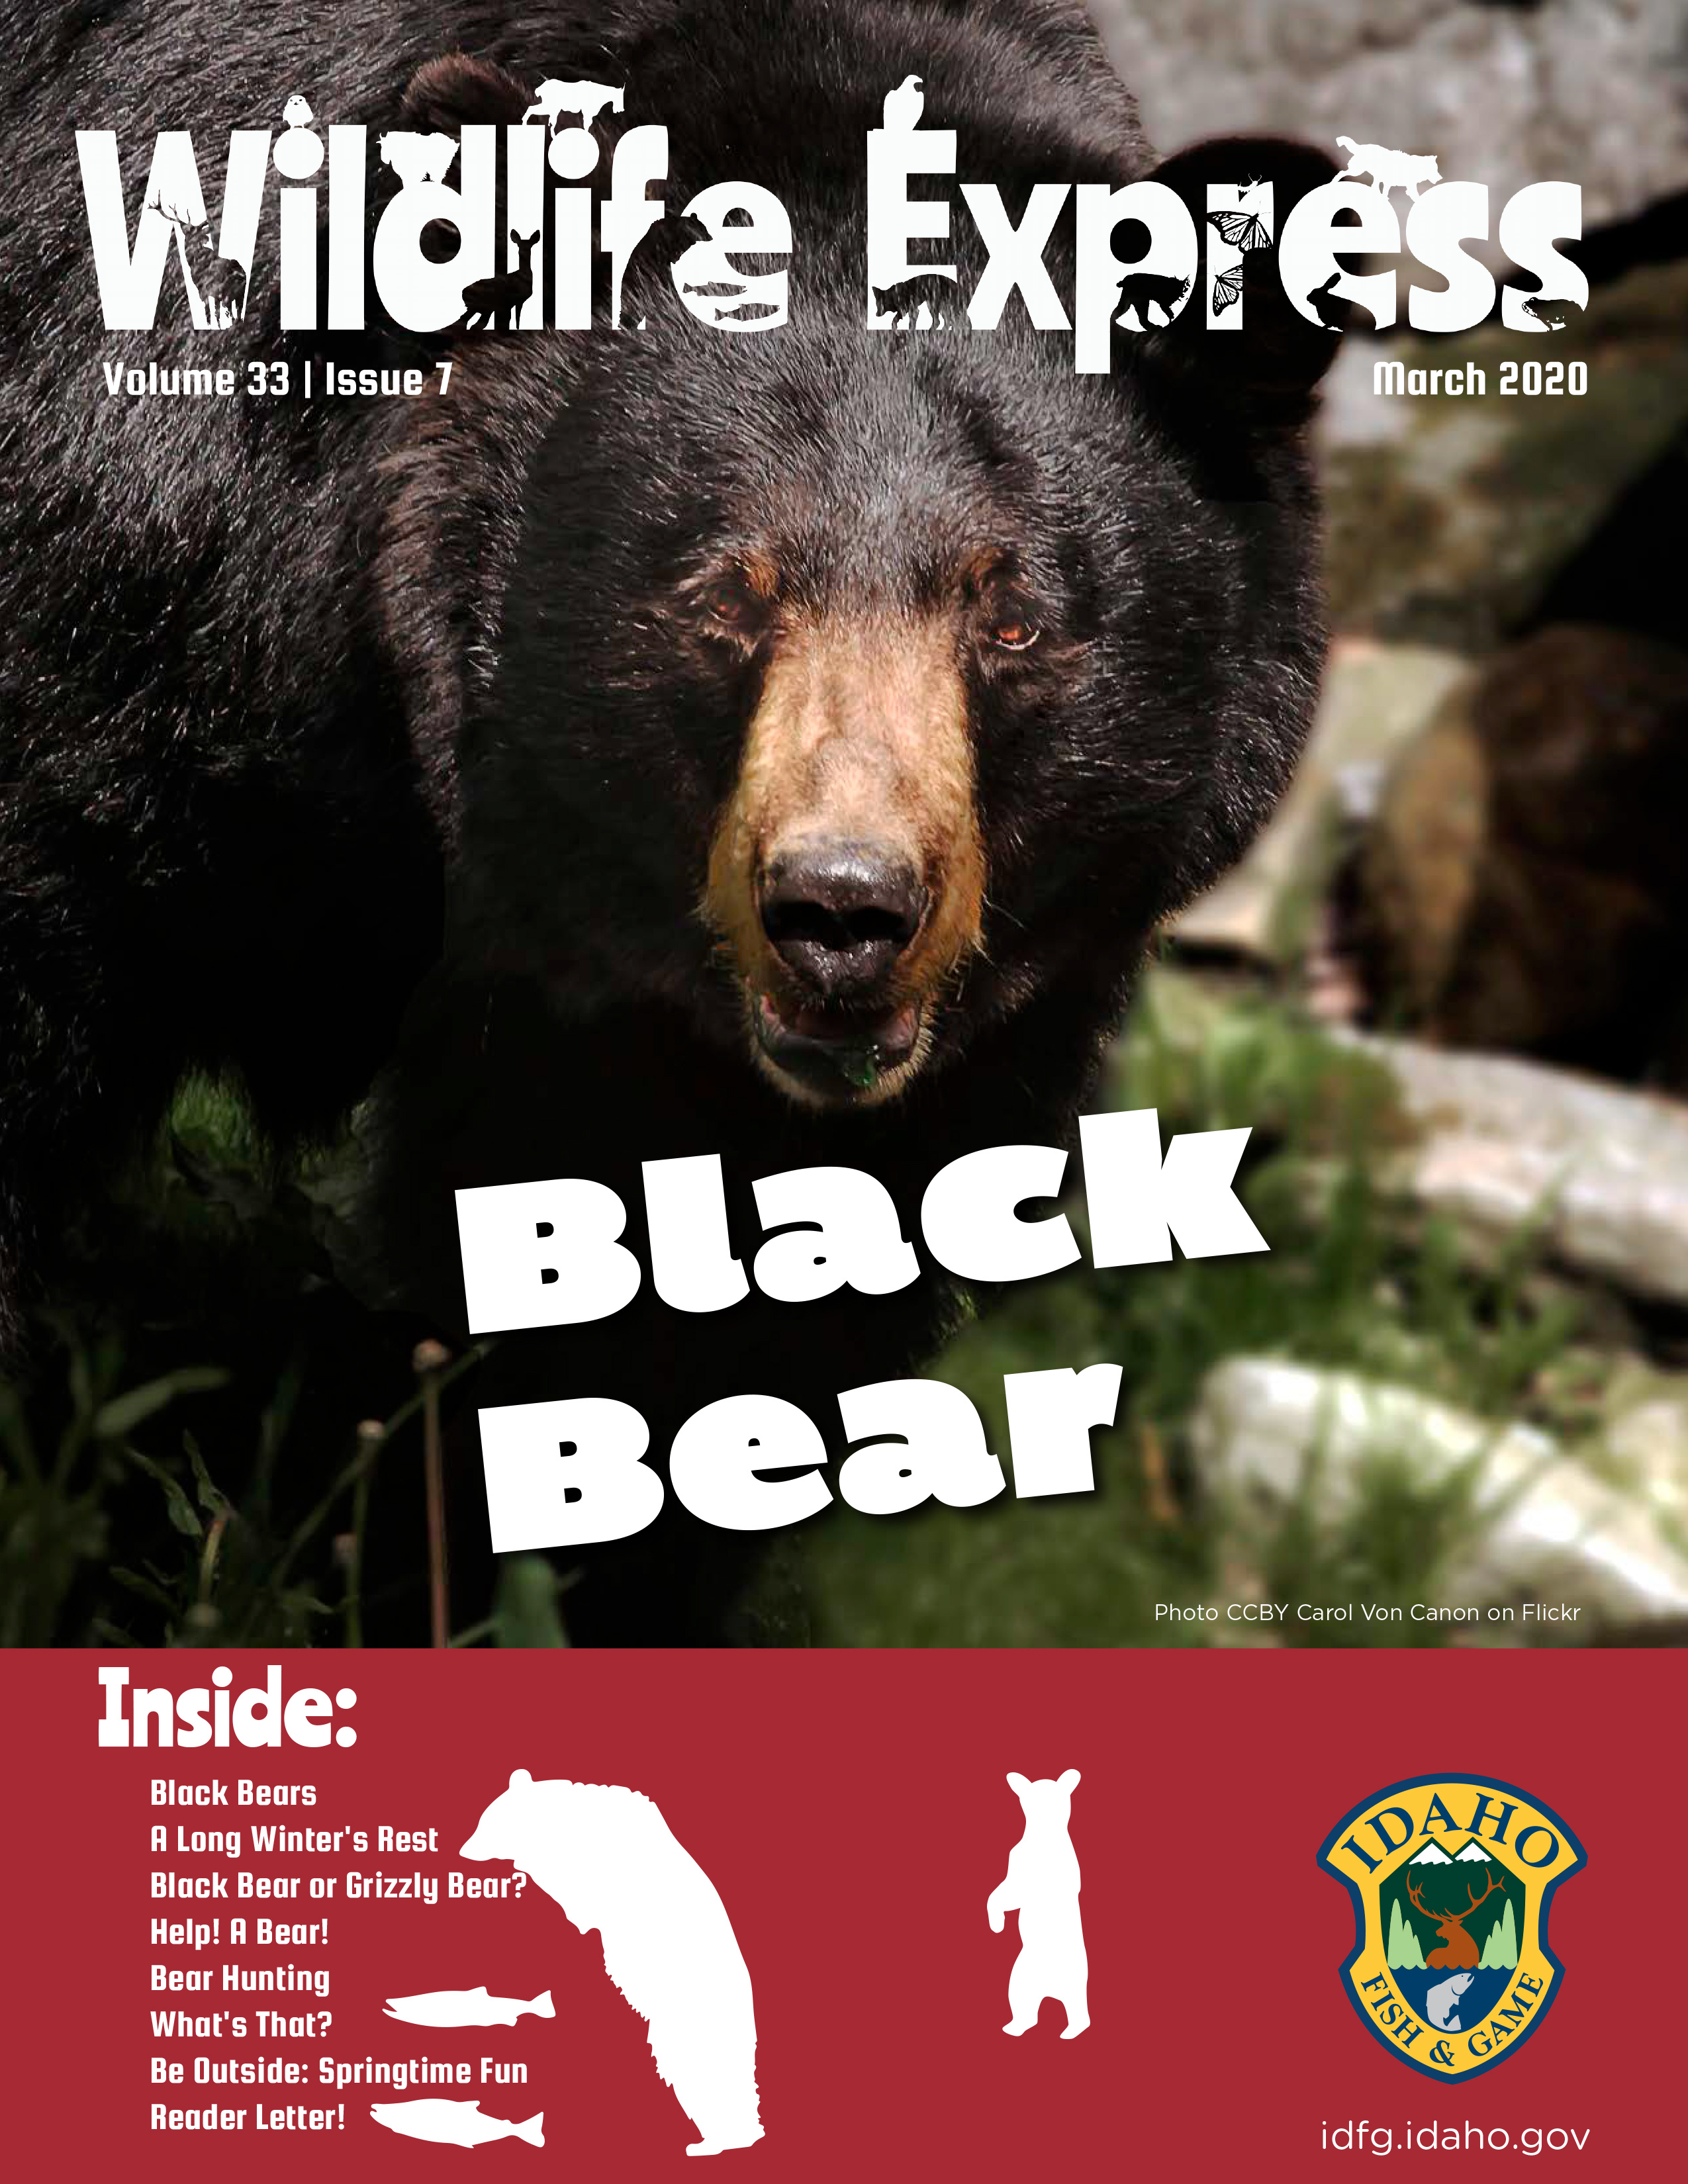 Wildlife Express Cover: Bears